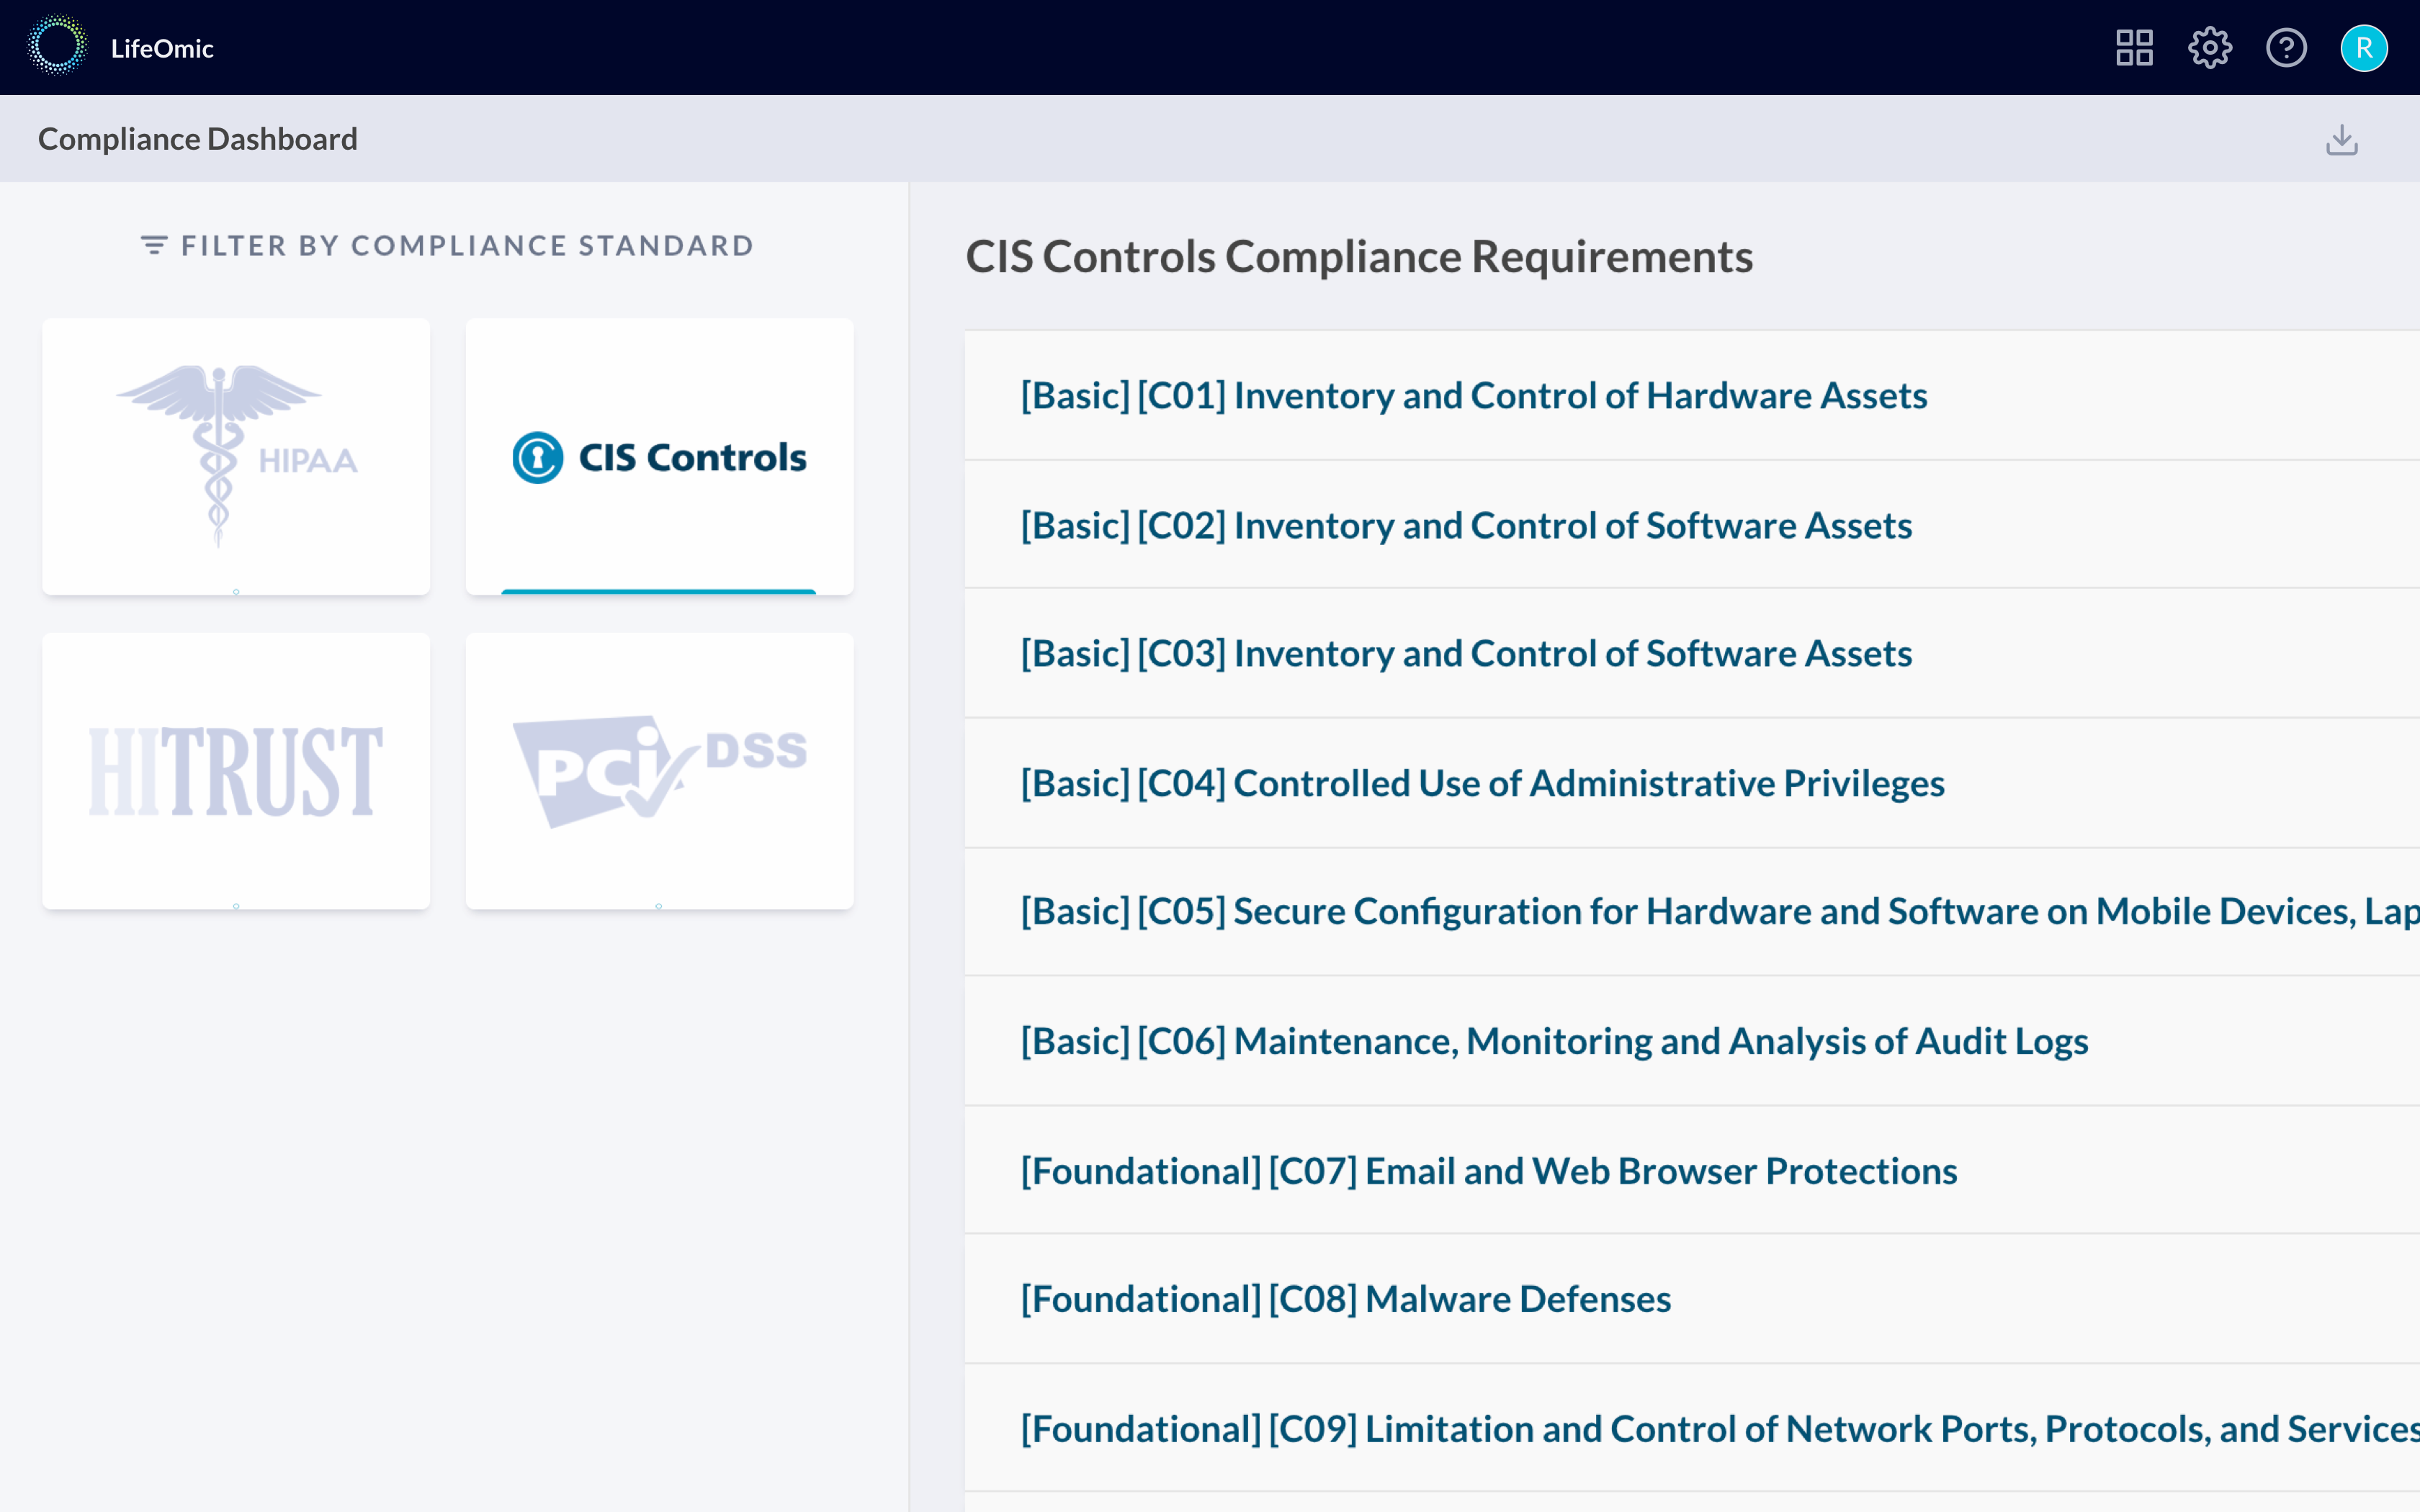 Track compliance with various security frameworks and controls in real time.